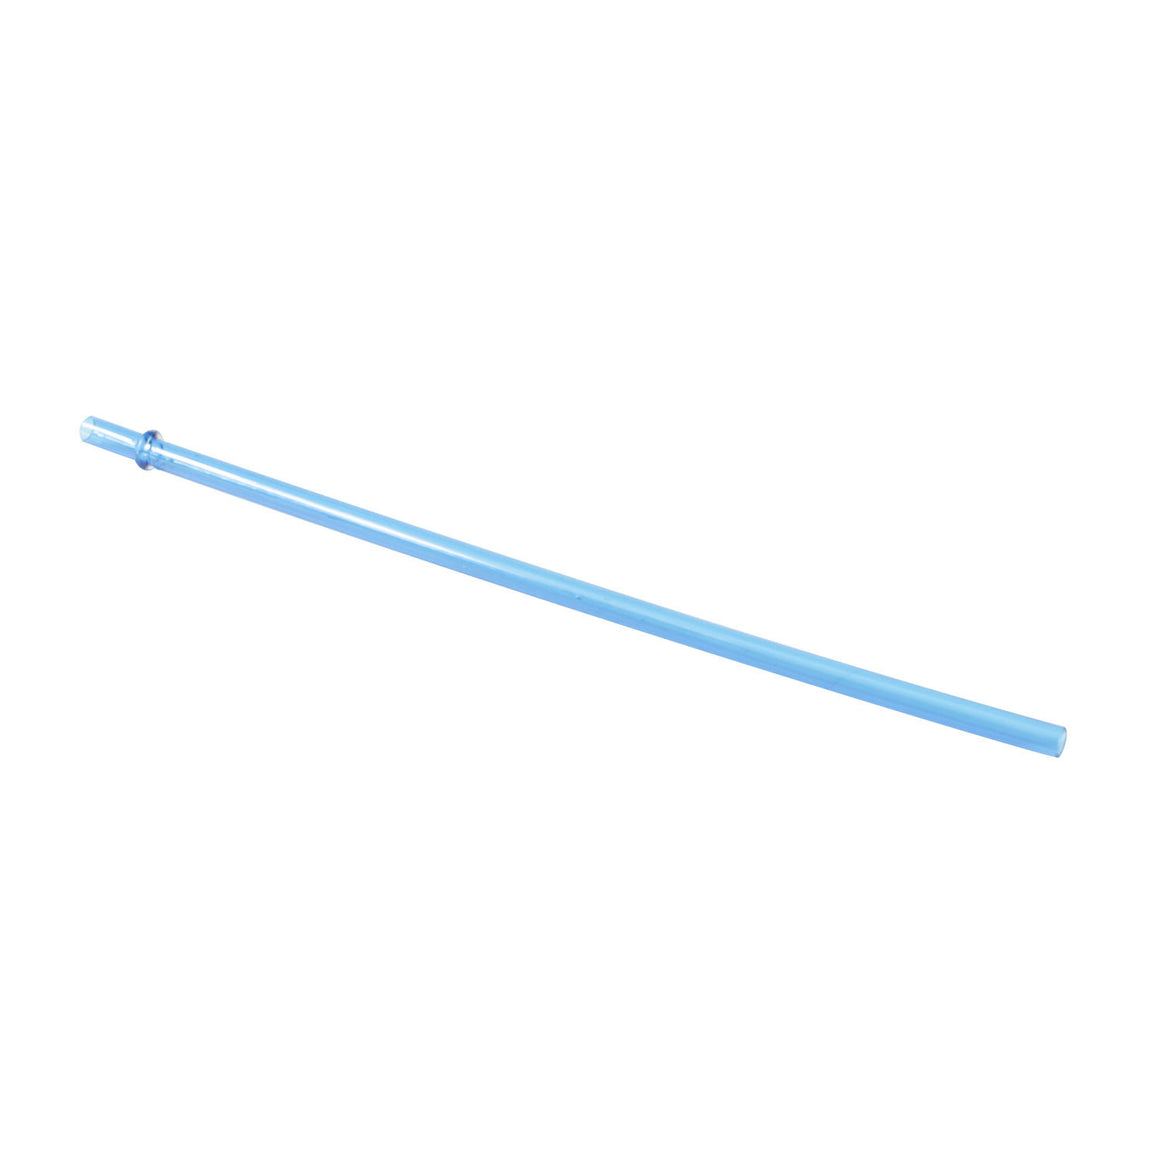 Cool Gear | 10-Inch Replacement Straws For Chillers/Tumblers in Blue